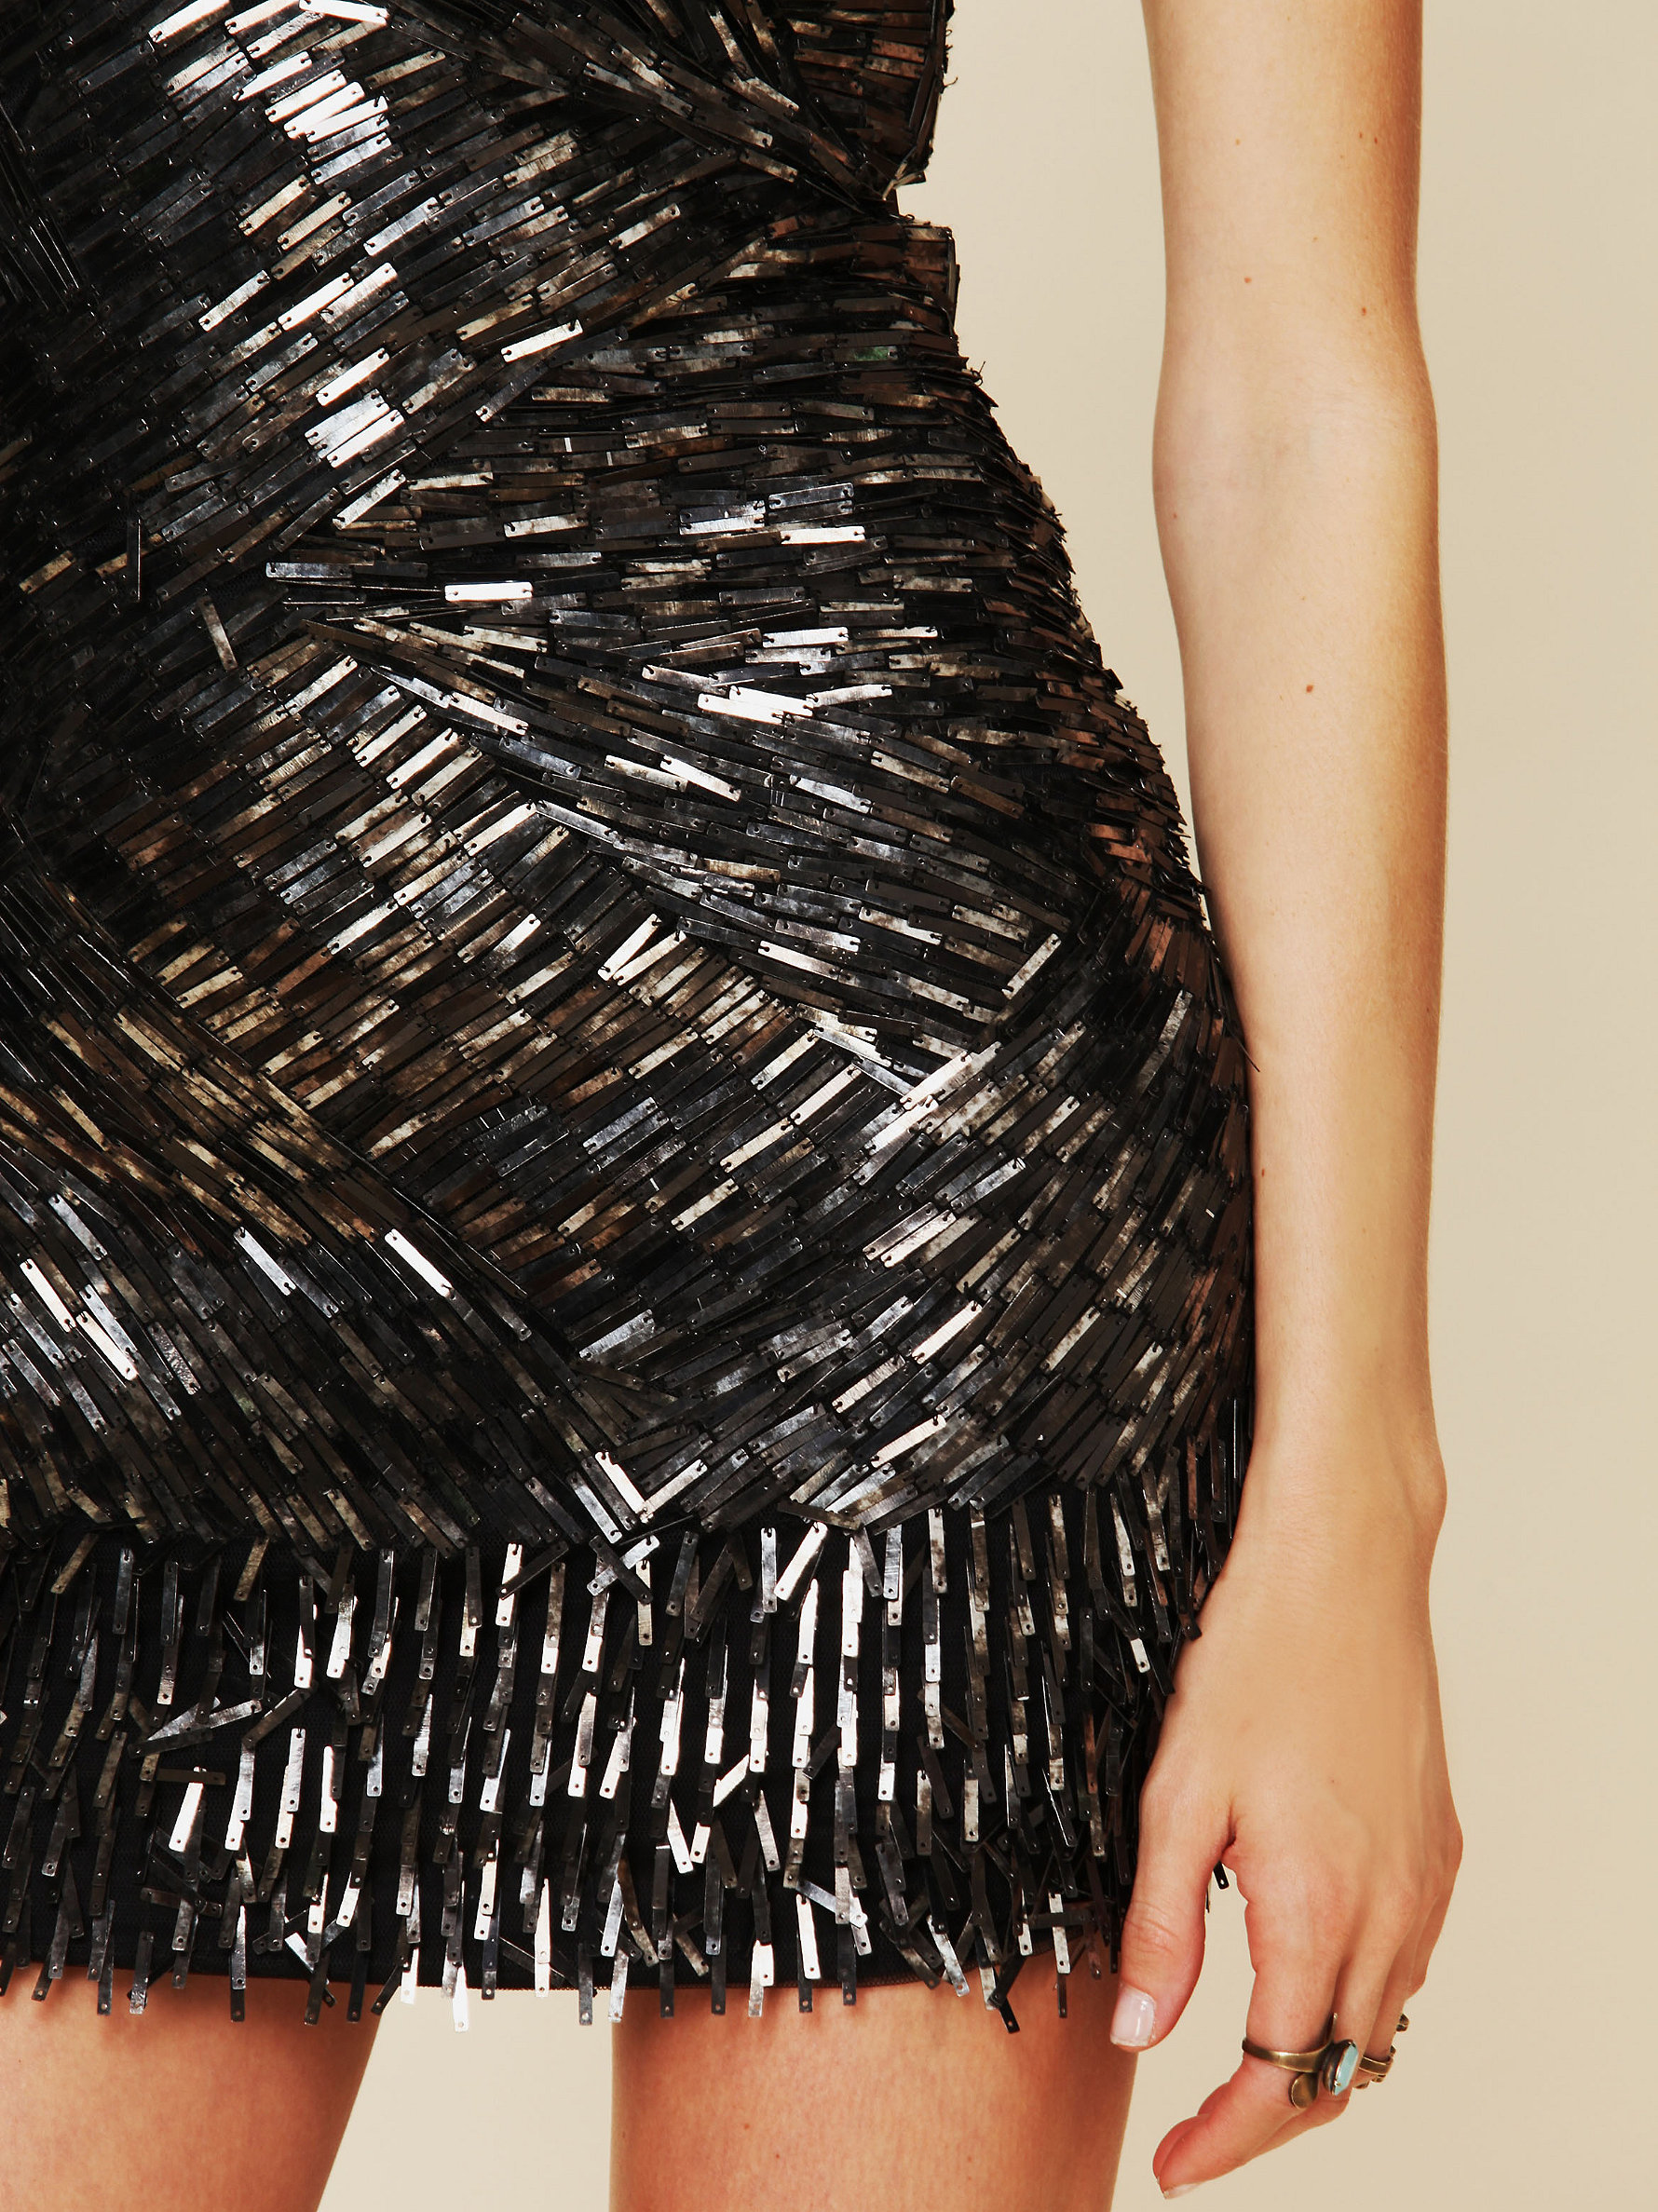 Starry Eyed Sequins Dress from Free People Boutique